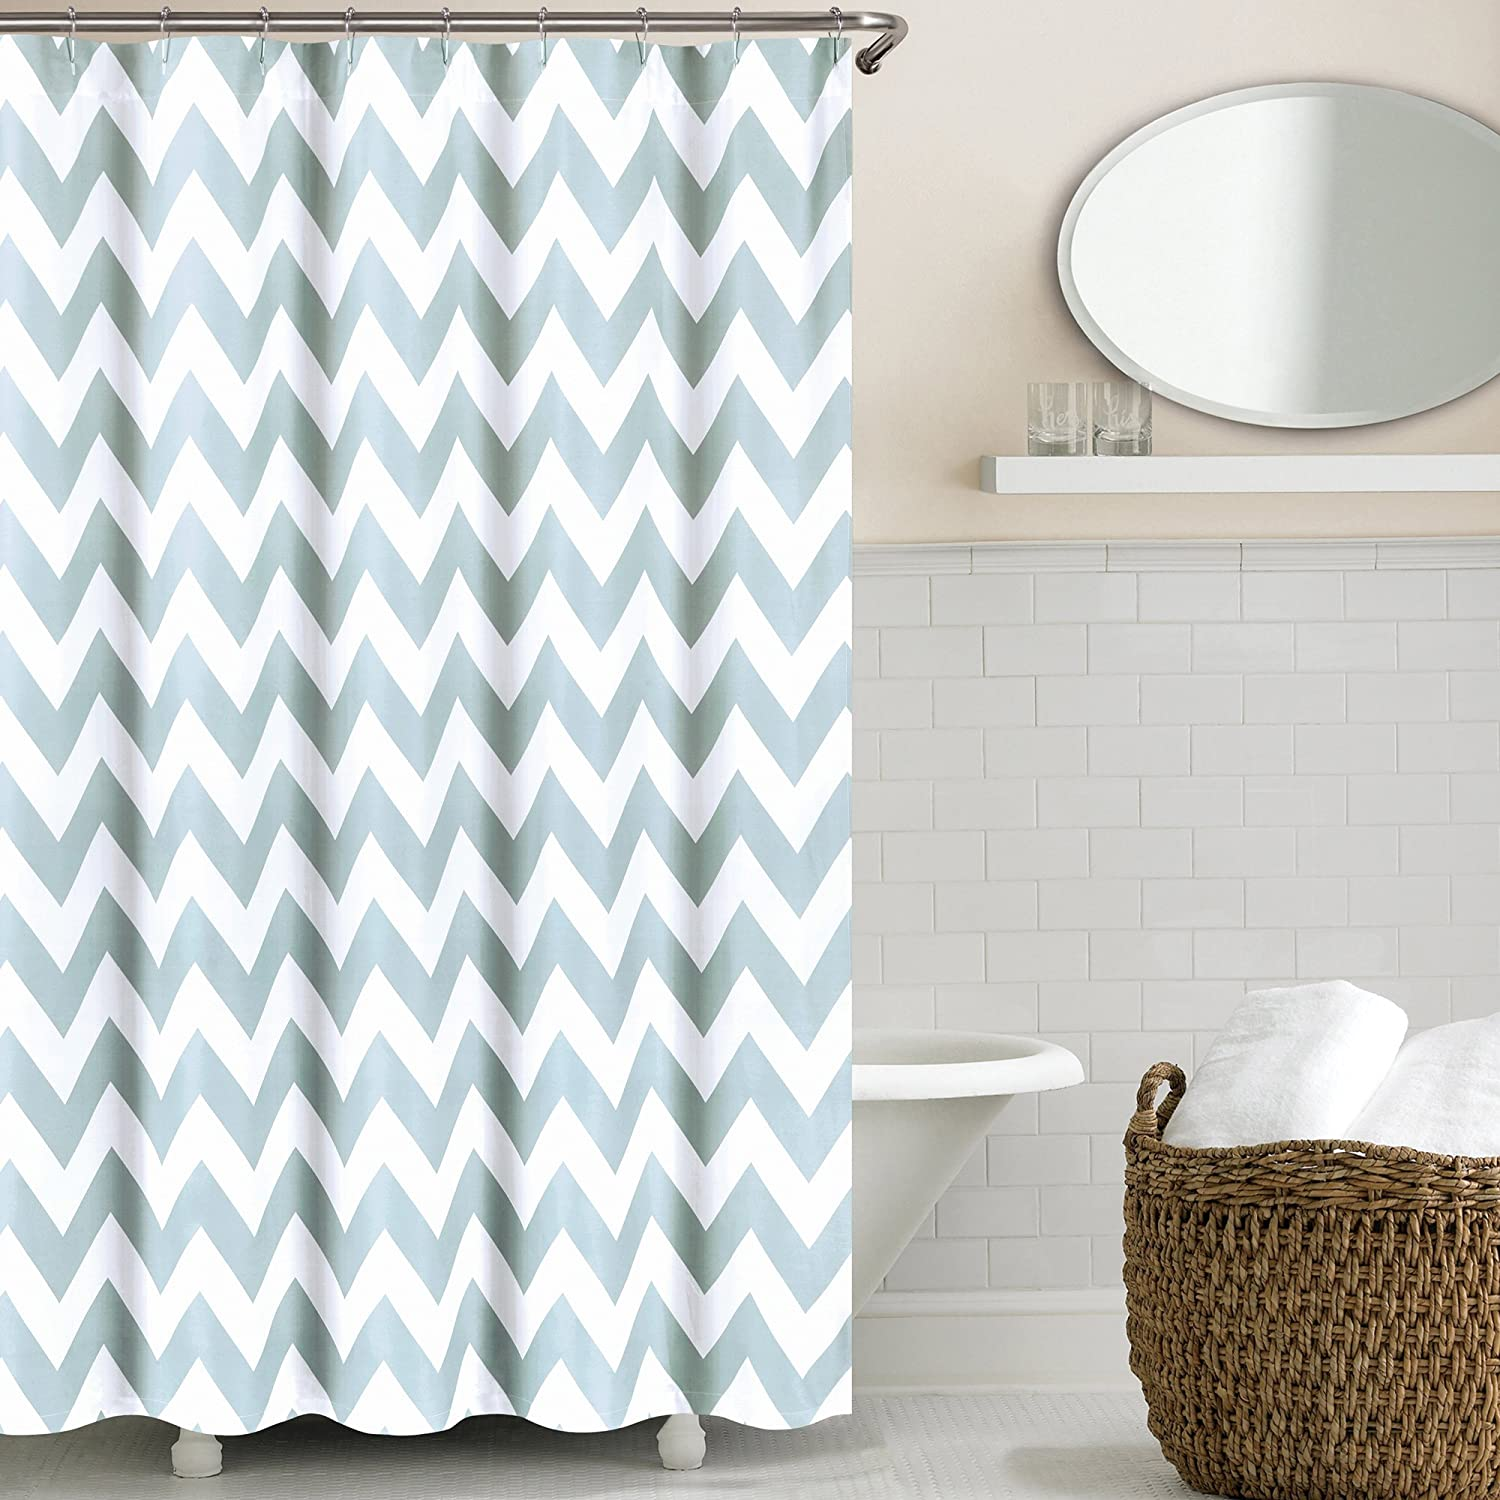 teal and yellow shower curtain.  Amazon com Echelon Home Chevron Shower Curtain Taupe Kitchen